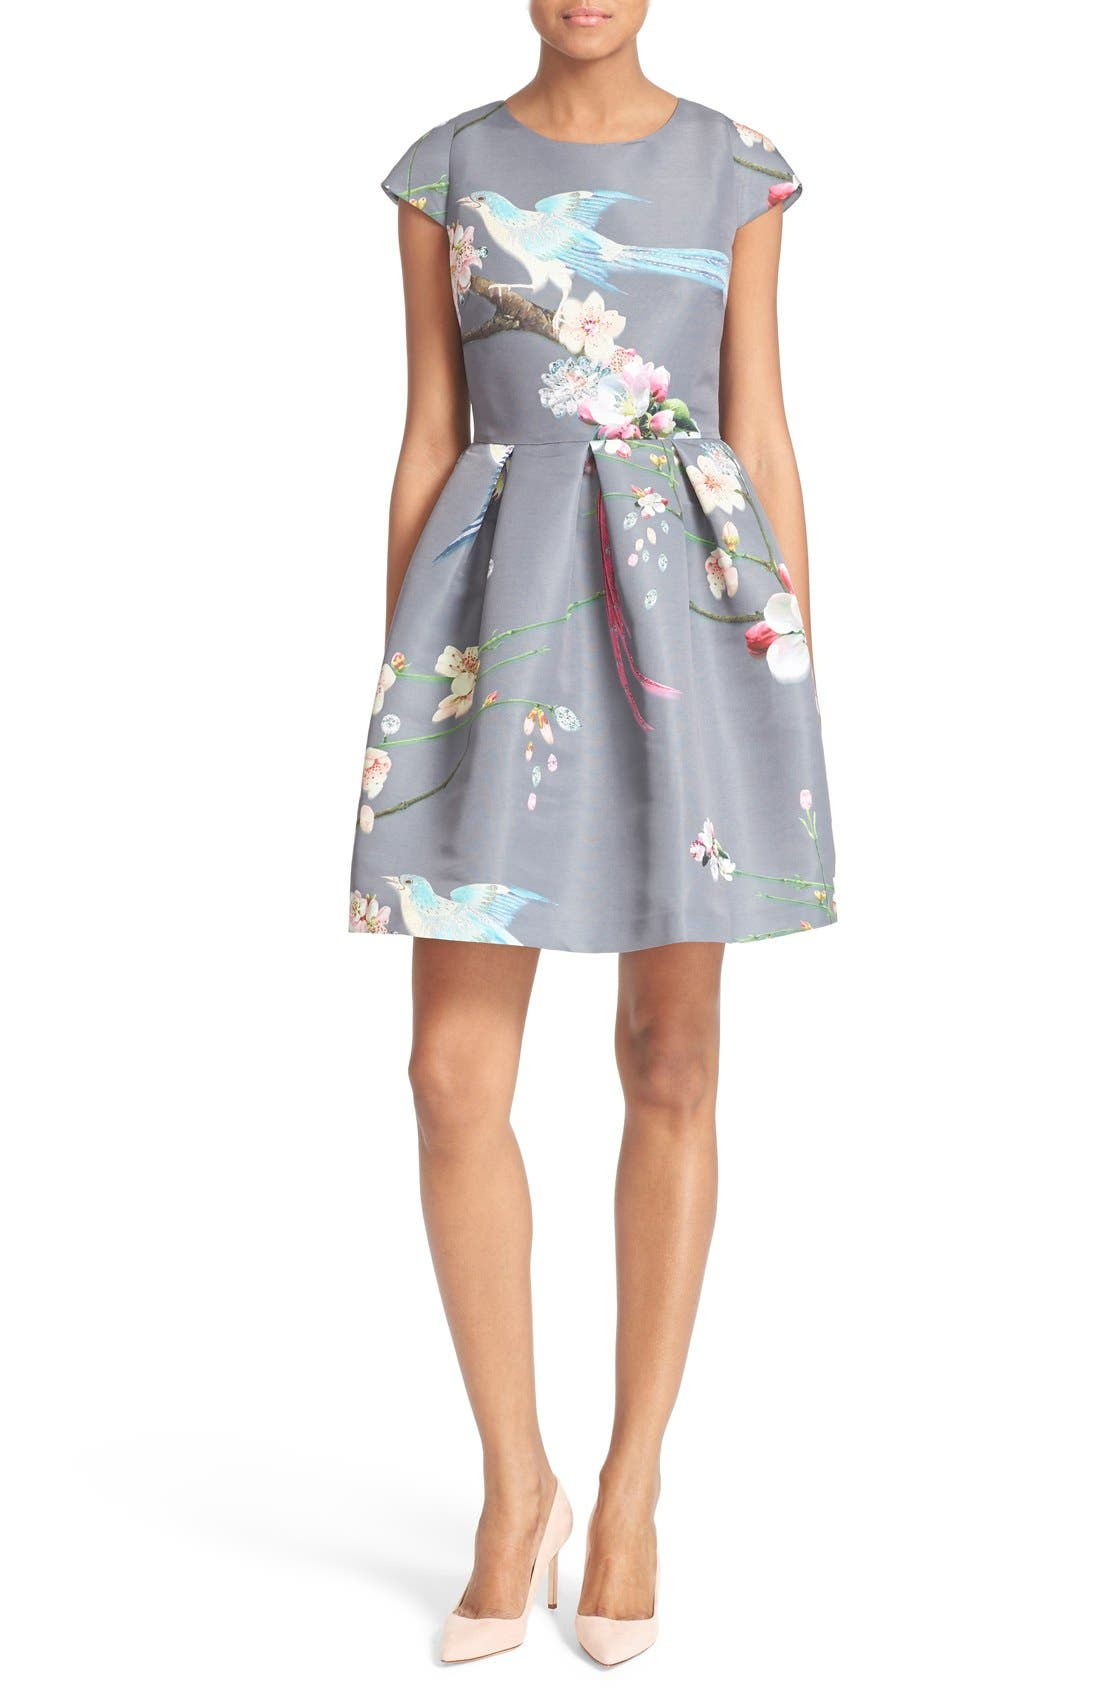 TED BAKER LONDON Zaldana Print Fit & Flare